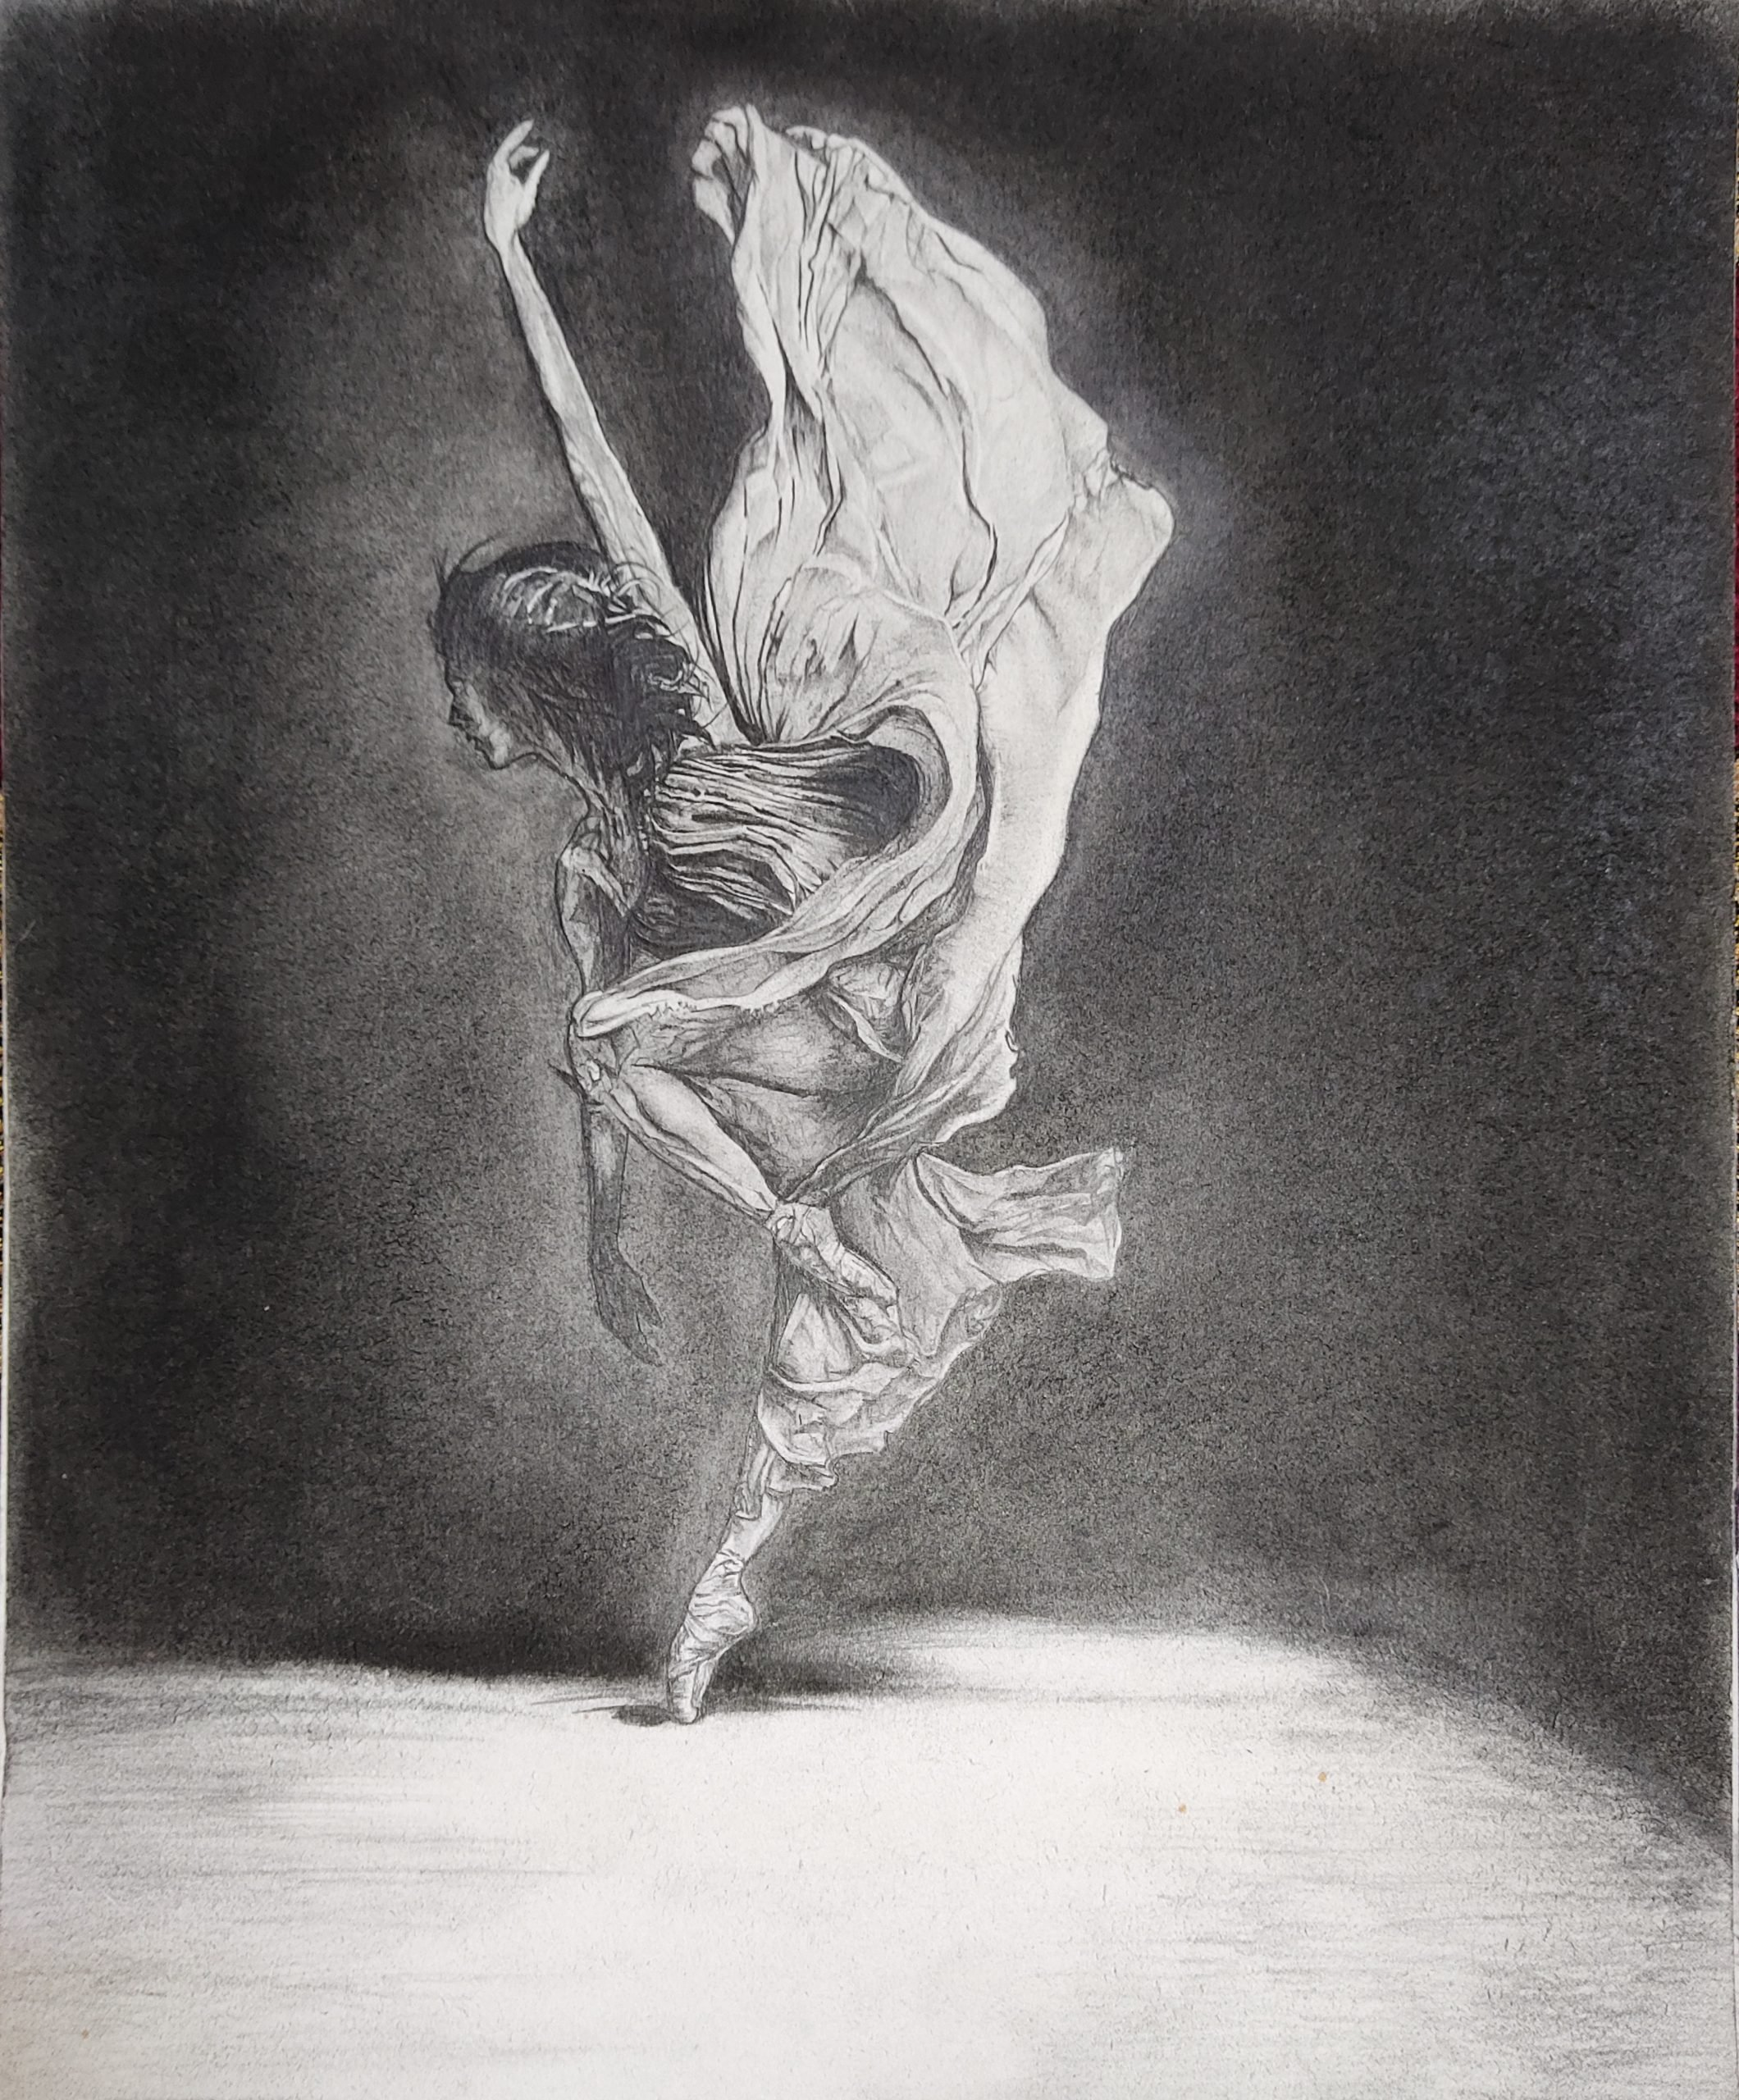 Monochrome poster of a women dancing